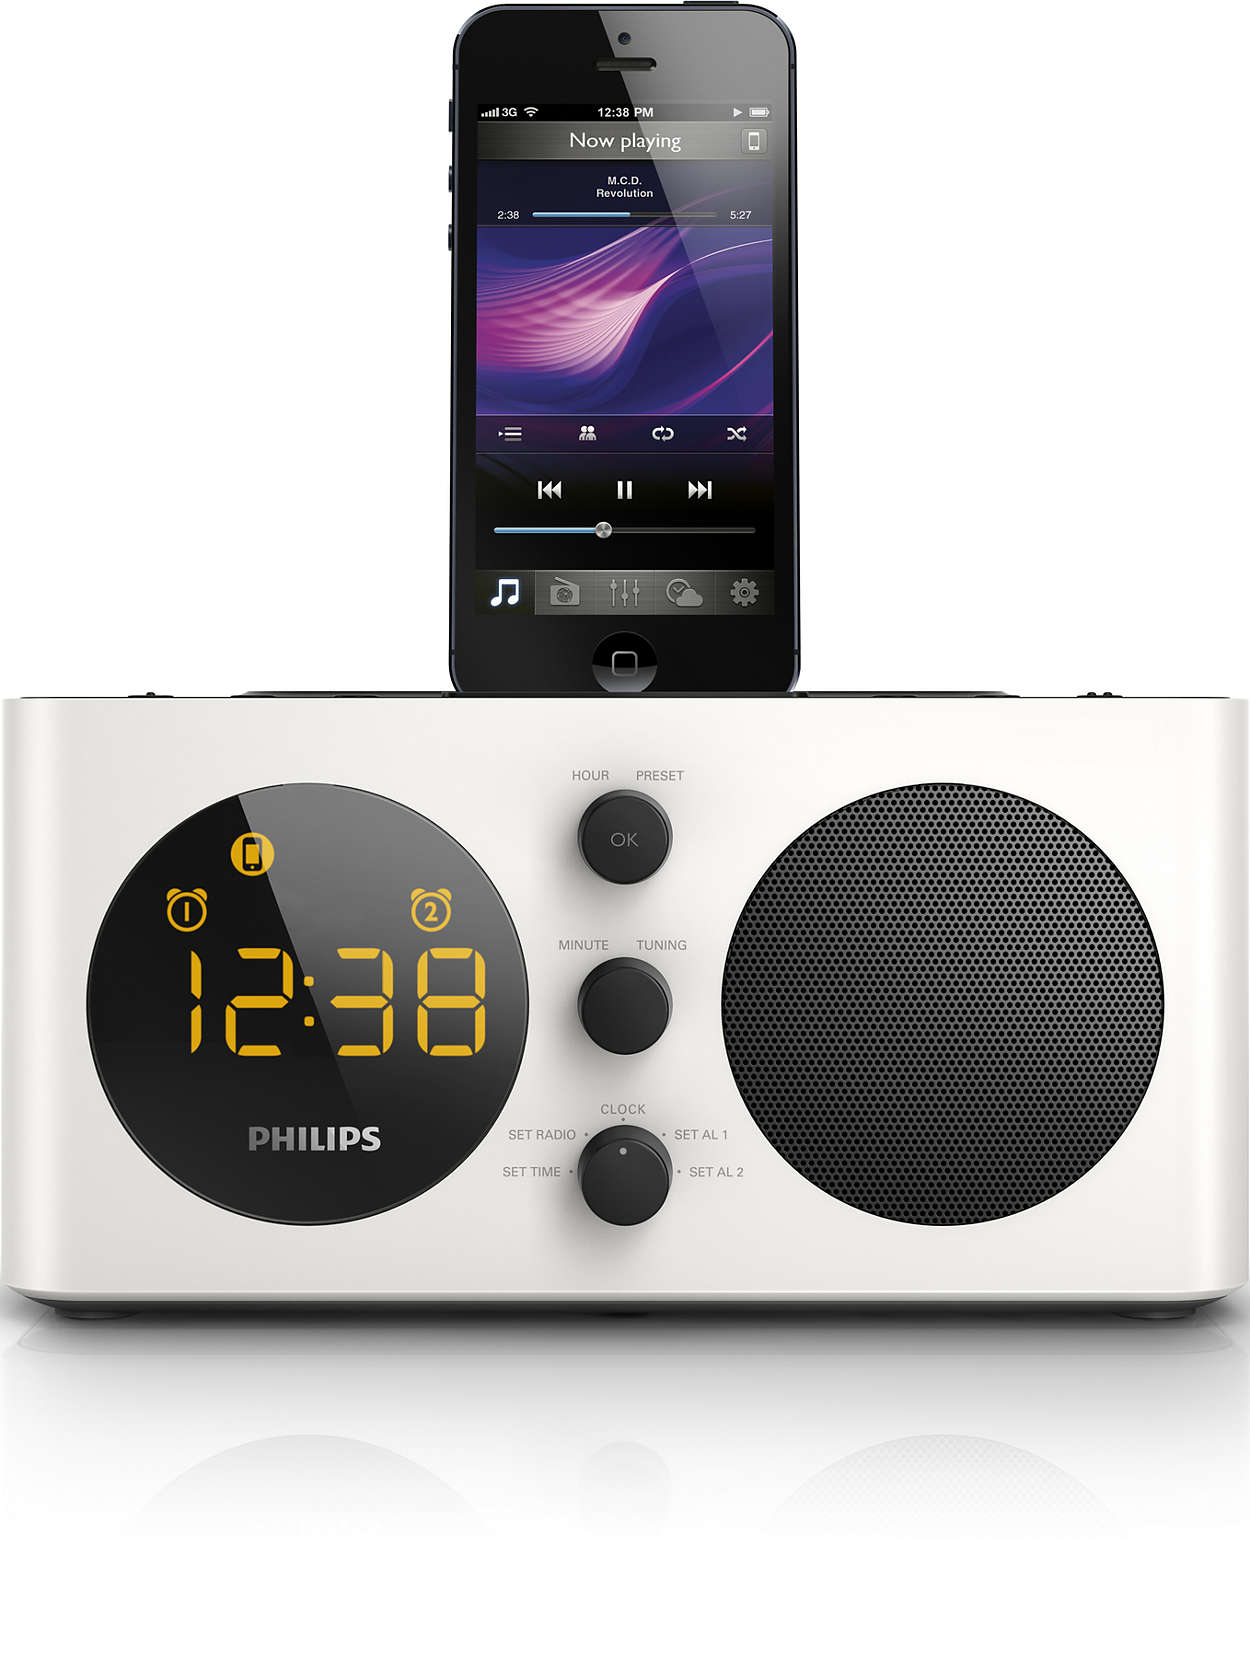 alarm clock radio for ipod iphone aj6200d 12 philips. Black Bedroom Furniture Sets. Home Design Ideas